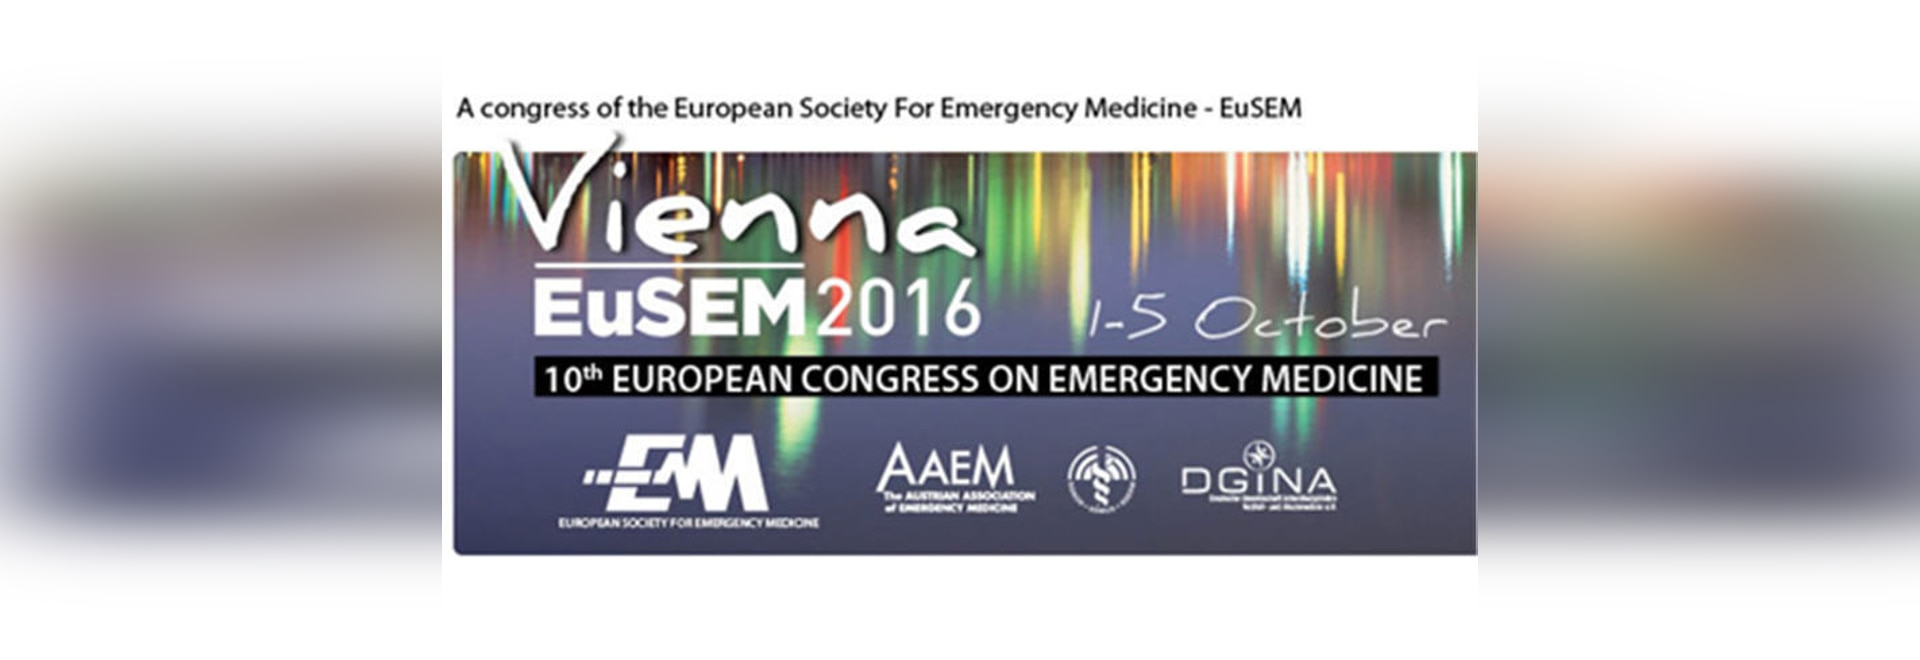 Radiometer becomes a gold sponsor of the European Congress on Emergency Medicine